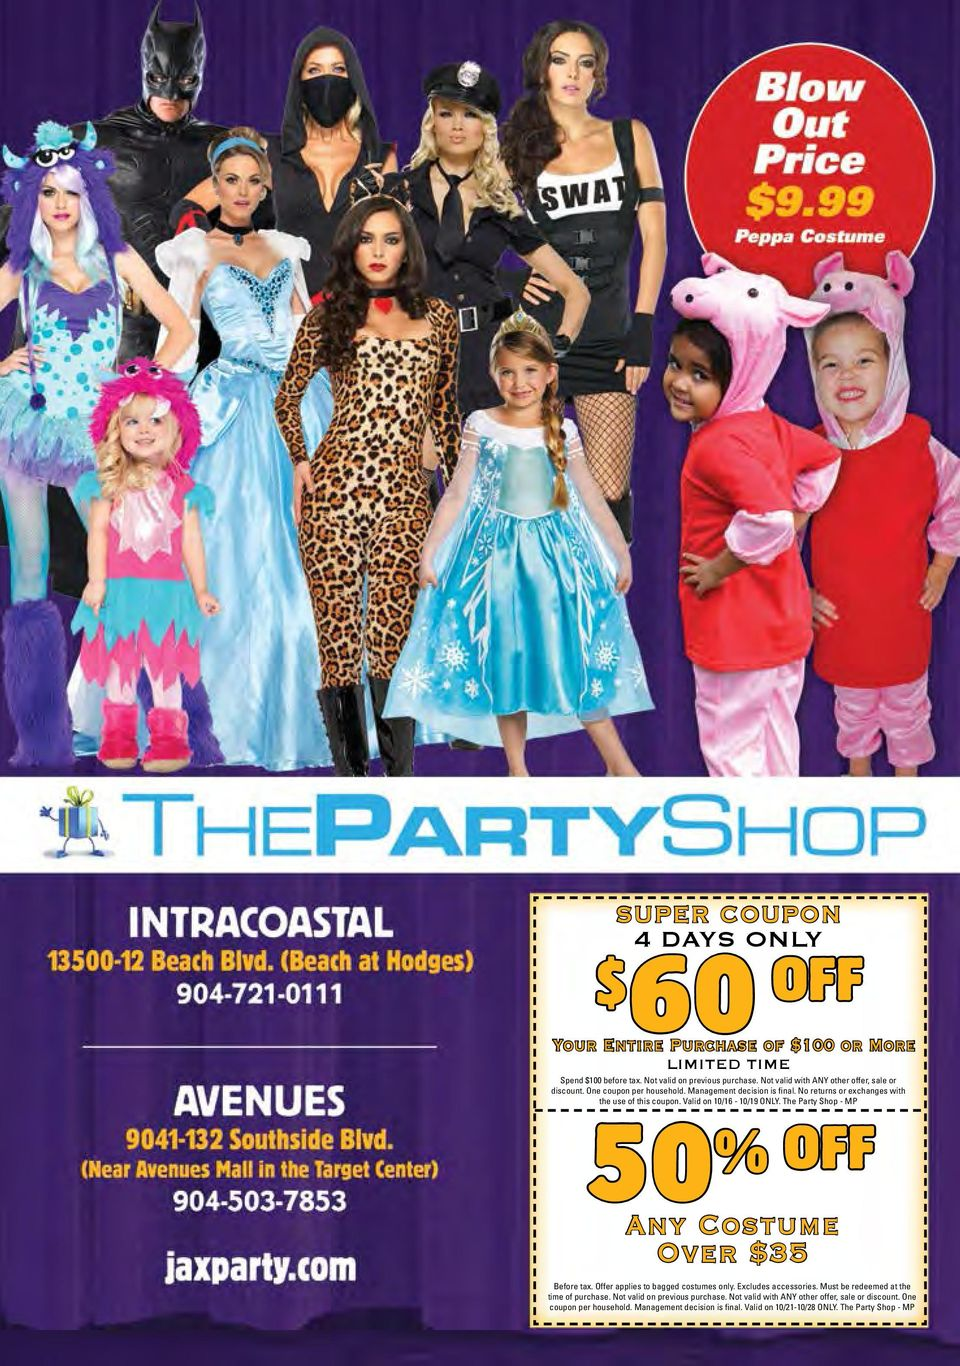 Valid on 10/16-10/19 ONLY. The Party Shop - MP 50 % OFF Any Costume Over 35 Before tax. Offer applies to bagged costumes only. Excludes accessories.